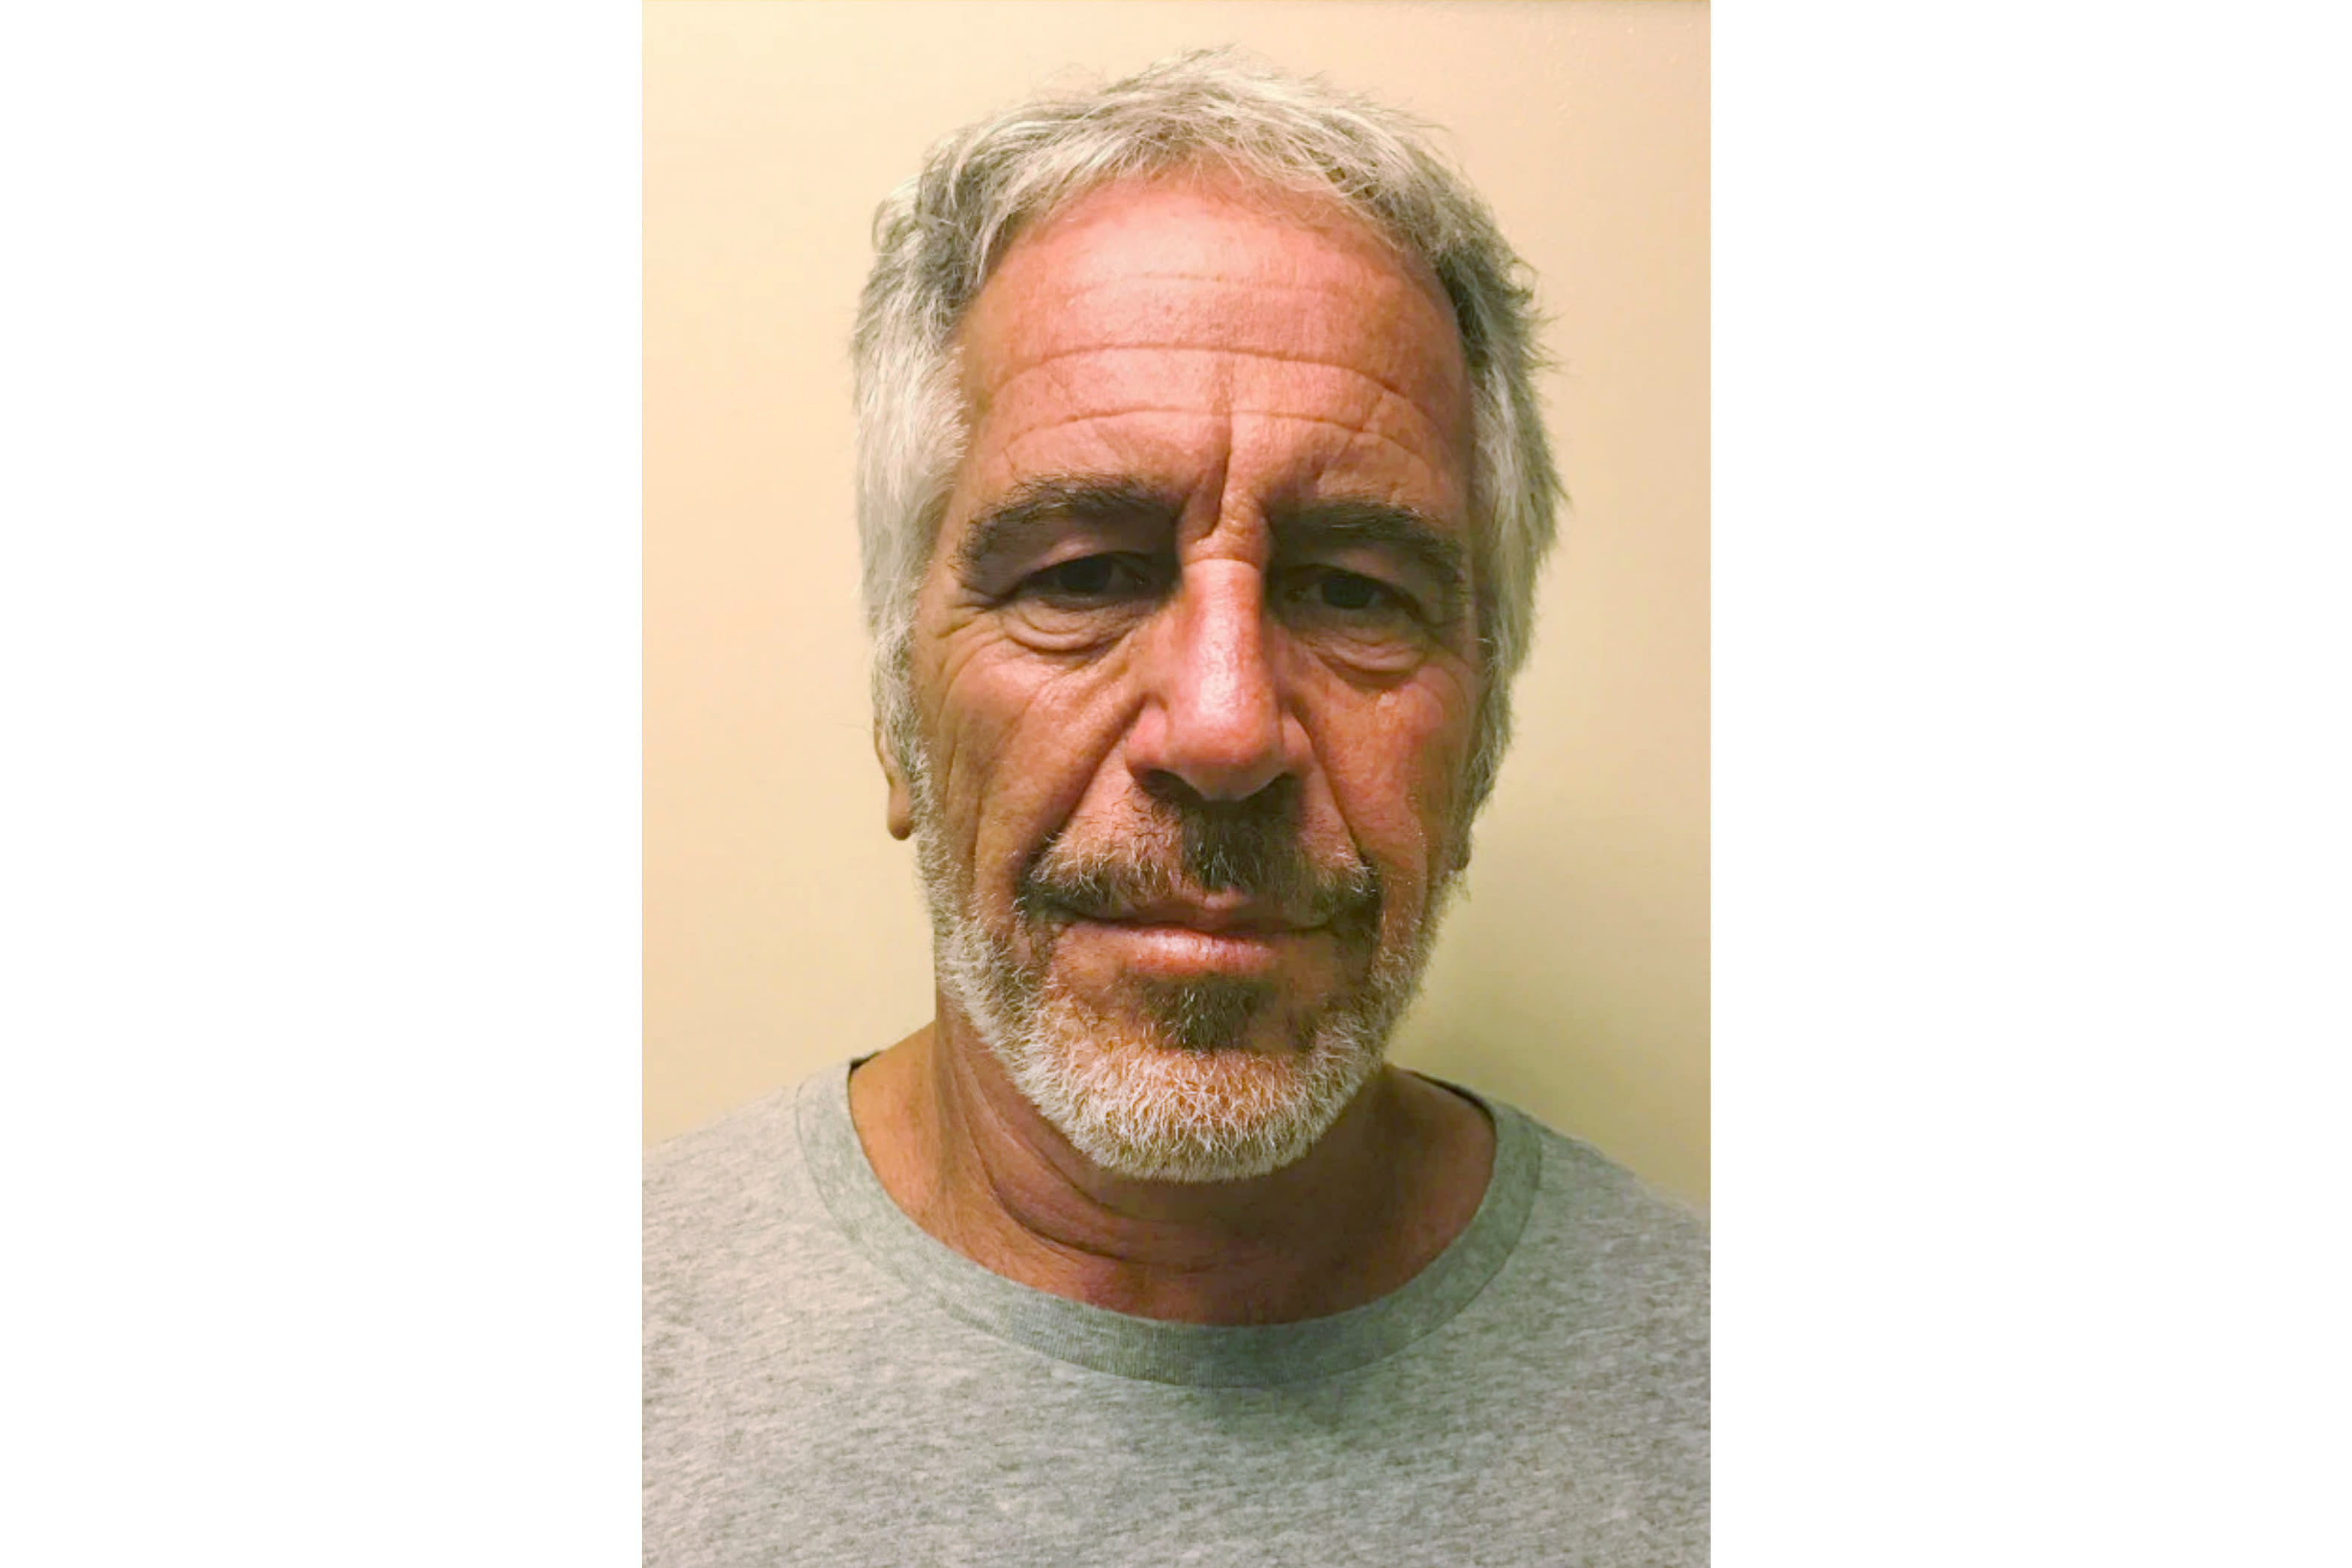 Jeffrey Epstein: Labor Secretary Alex Acosta 'pleased' prosecutors moving forward